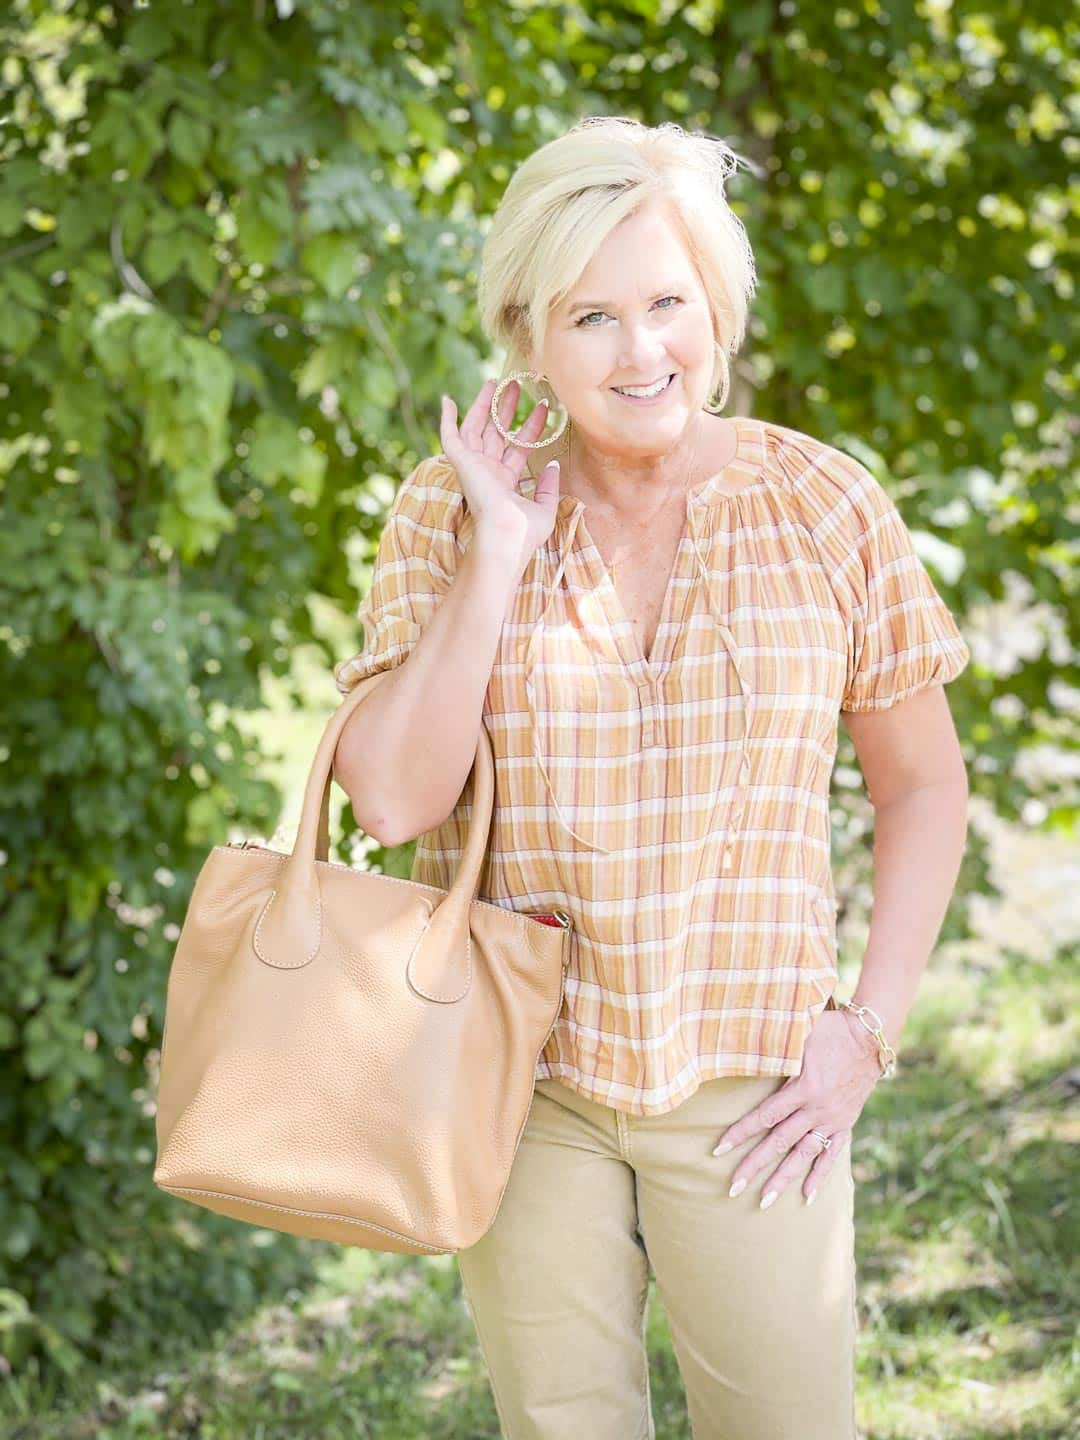 Over 40 Fashion Blogger, Tania Stephens, looks casual in her fall festive plaid top and gold jewelry from Kendra Scott